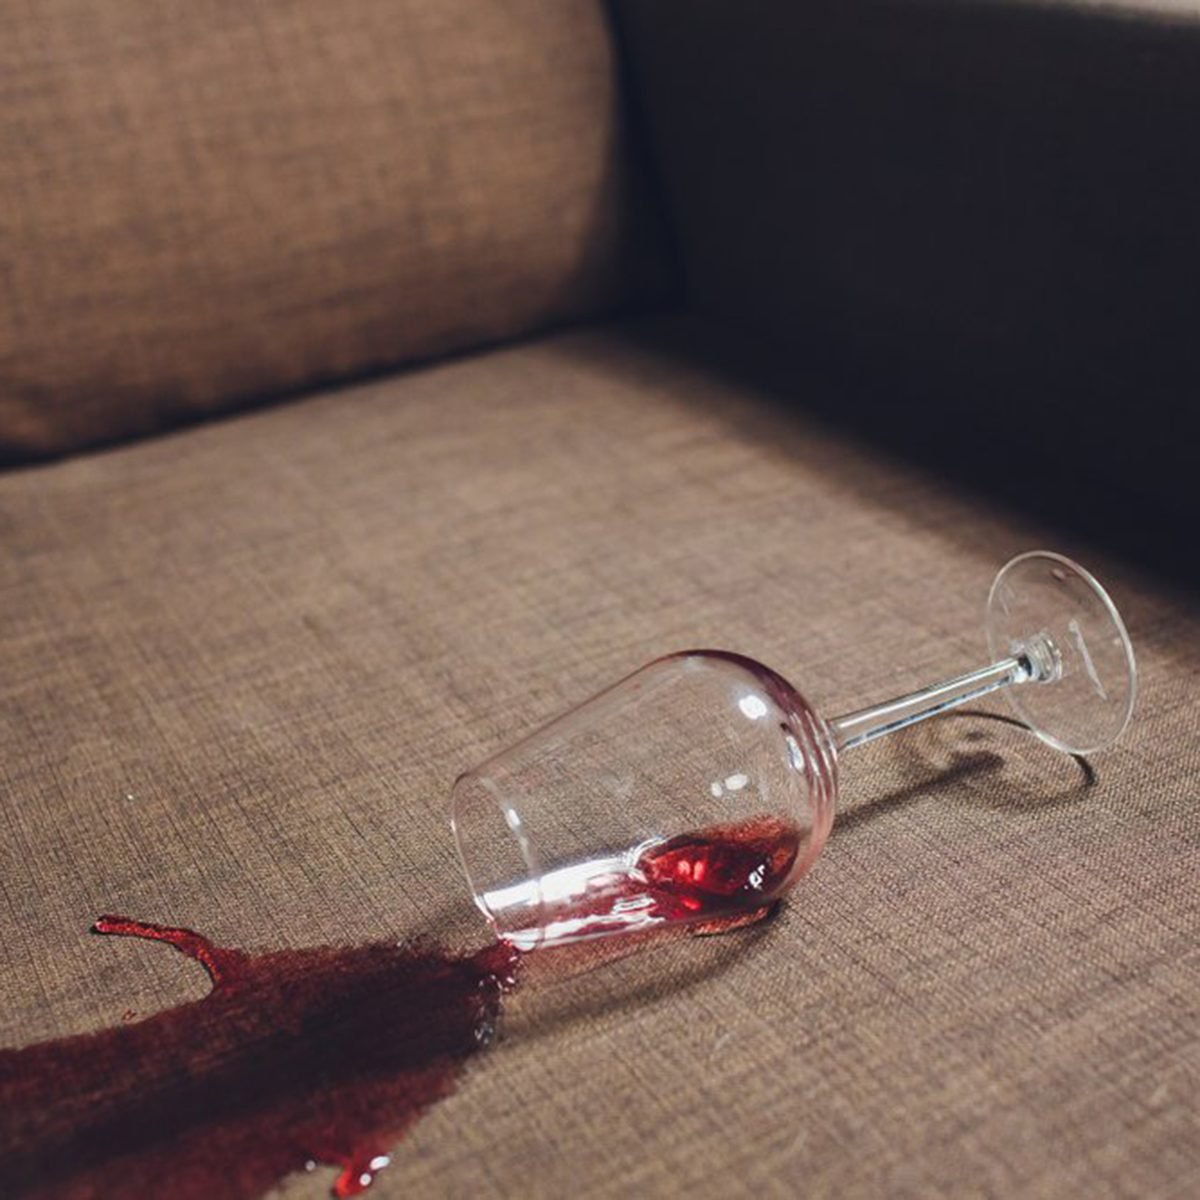 Couch red wine stains removal Melbourne